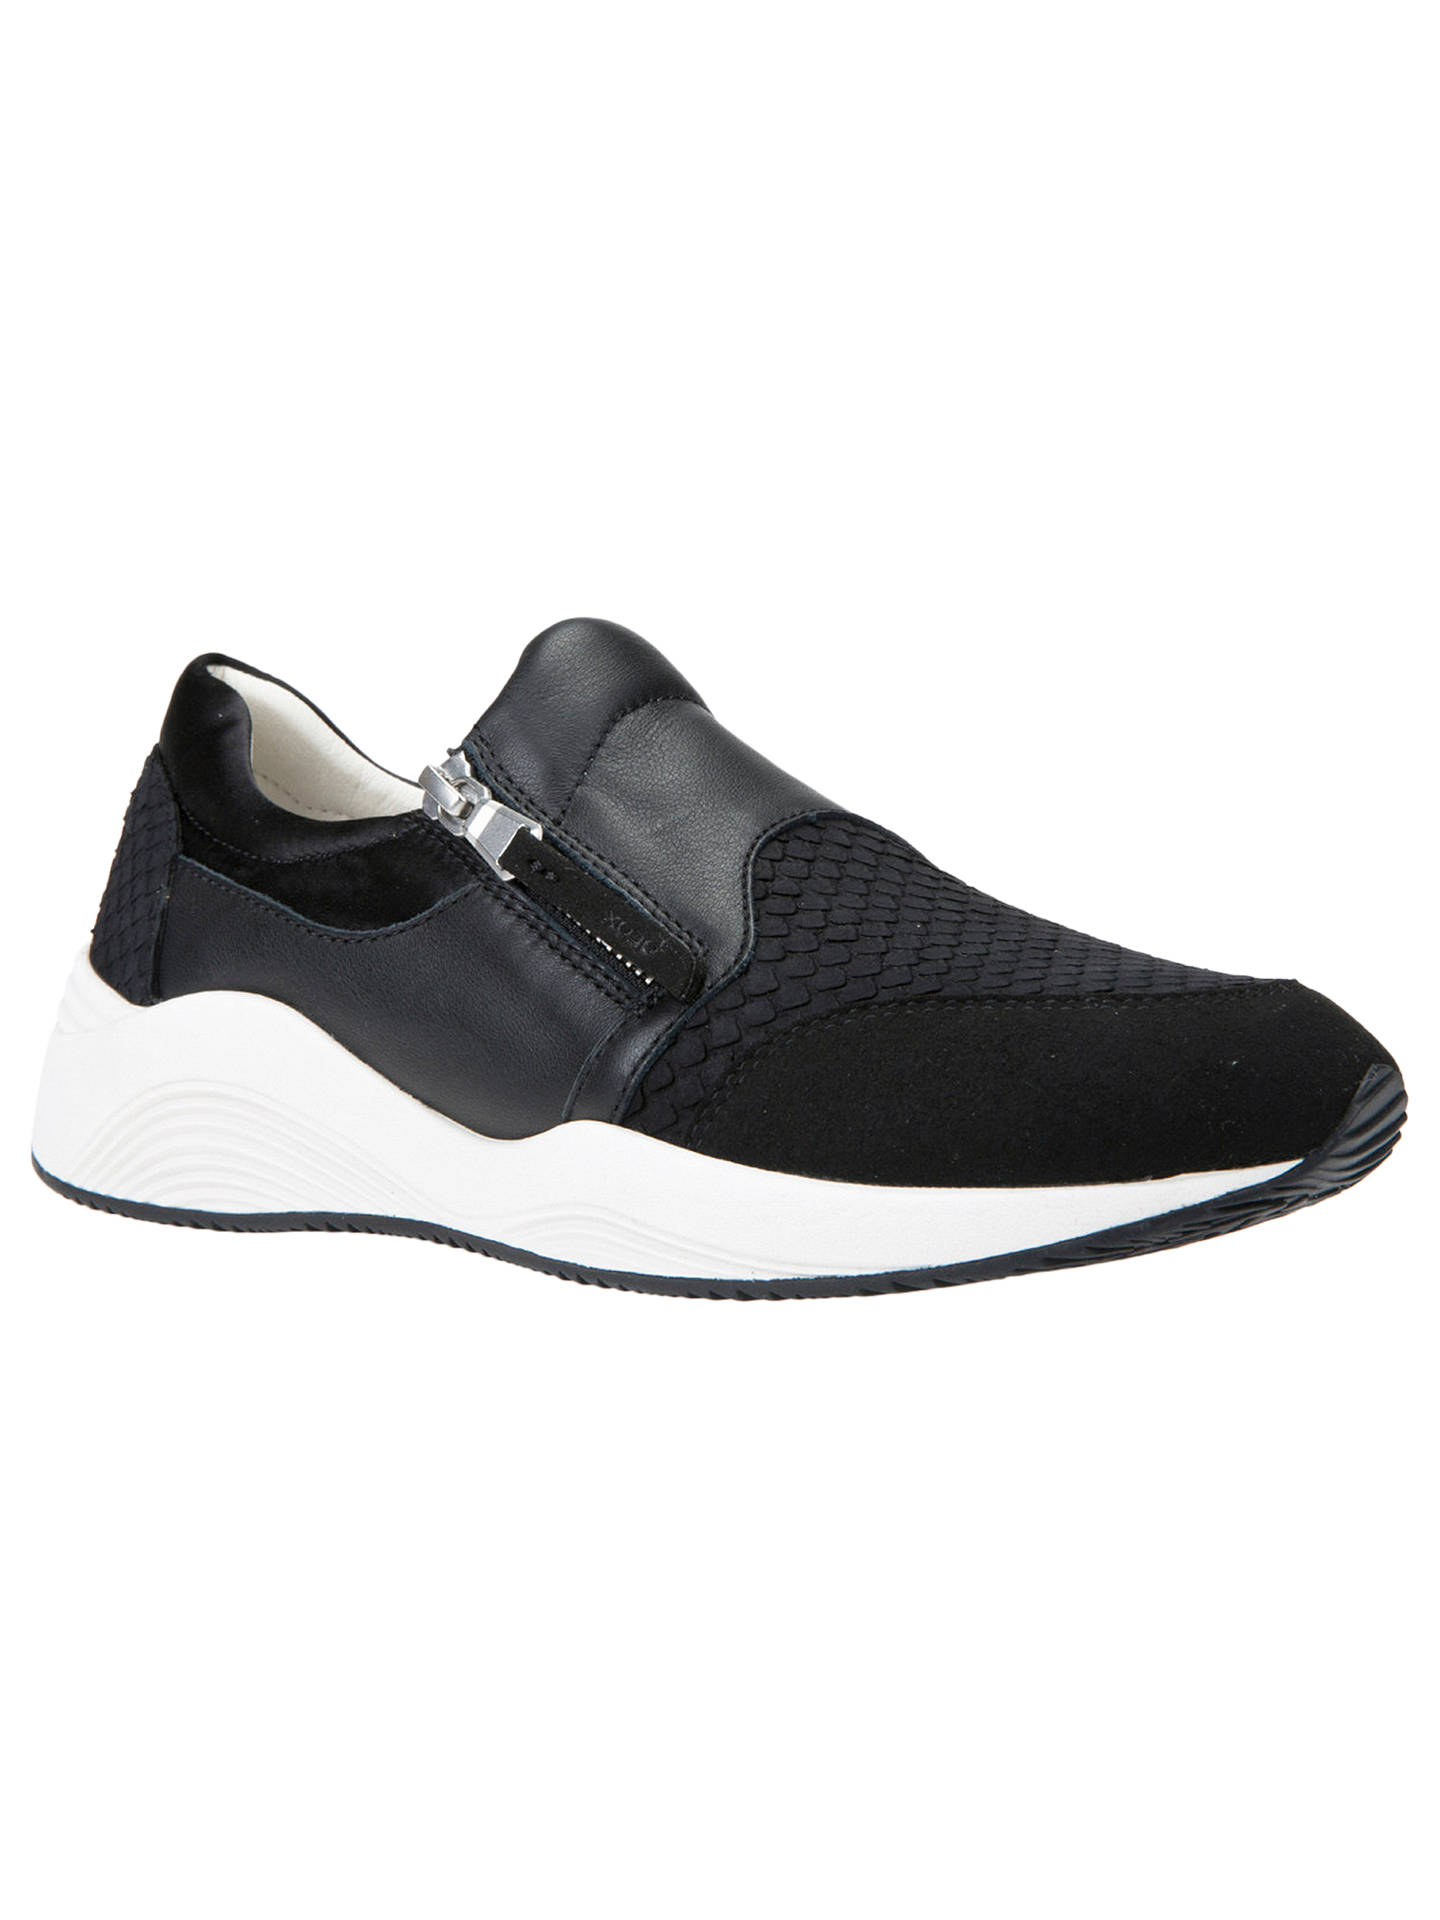 9d2ca7855dab3 Geox Women's Omaya Breathable Trainers at John Lewis & Partners